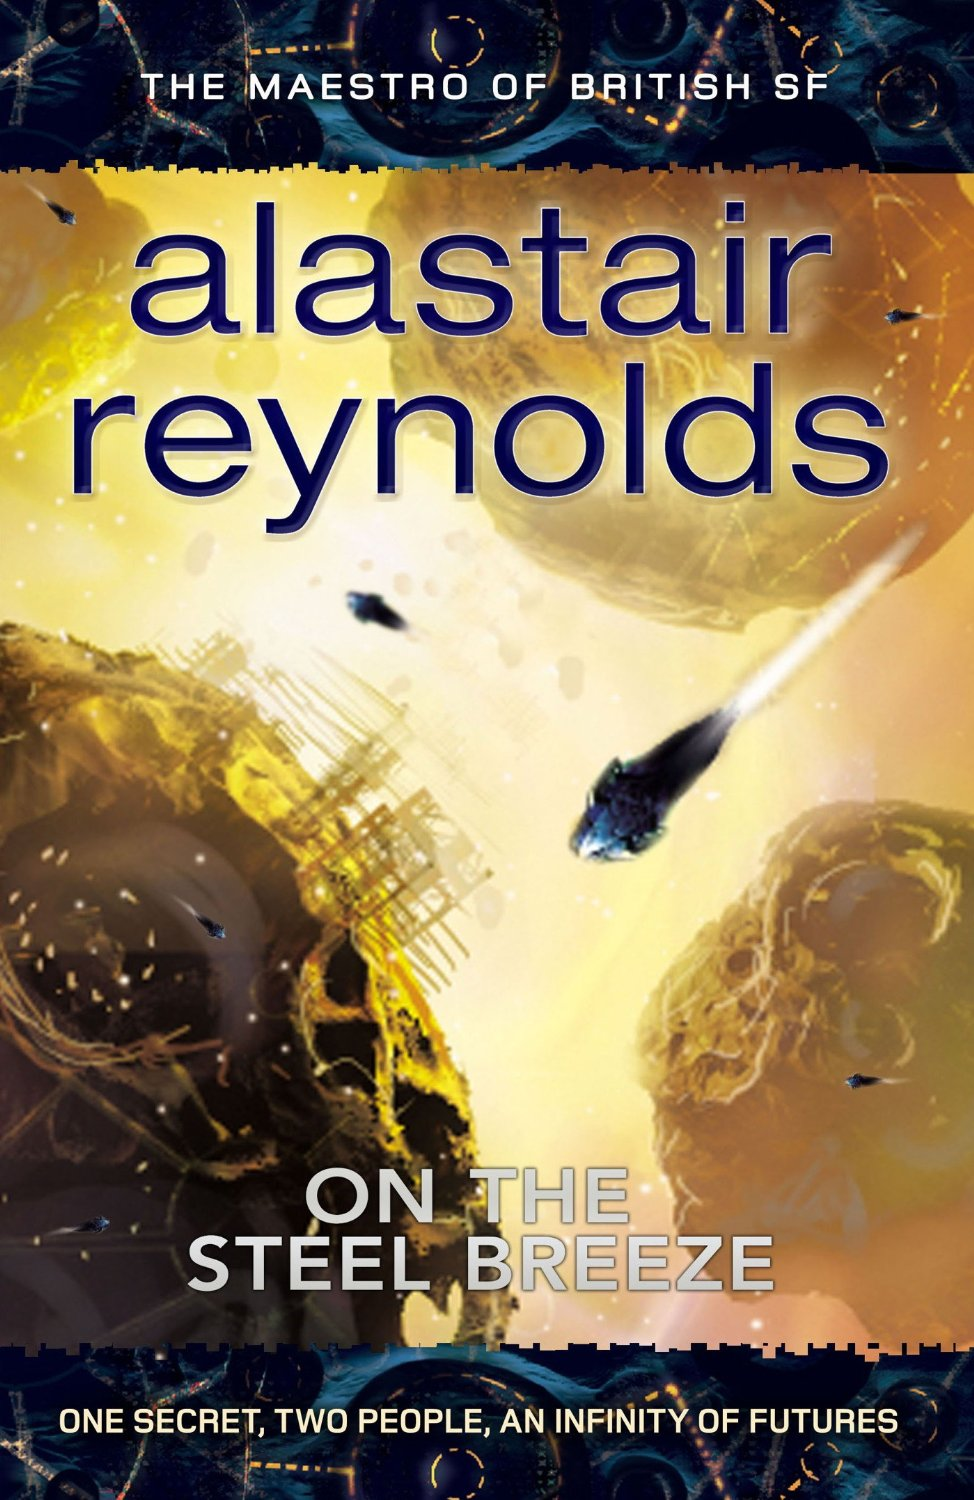 Cover of On the Steel Breeze by Alastair Reynolds - Poseidon's Children - Gollancz